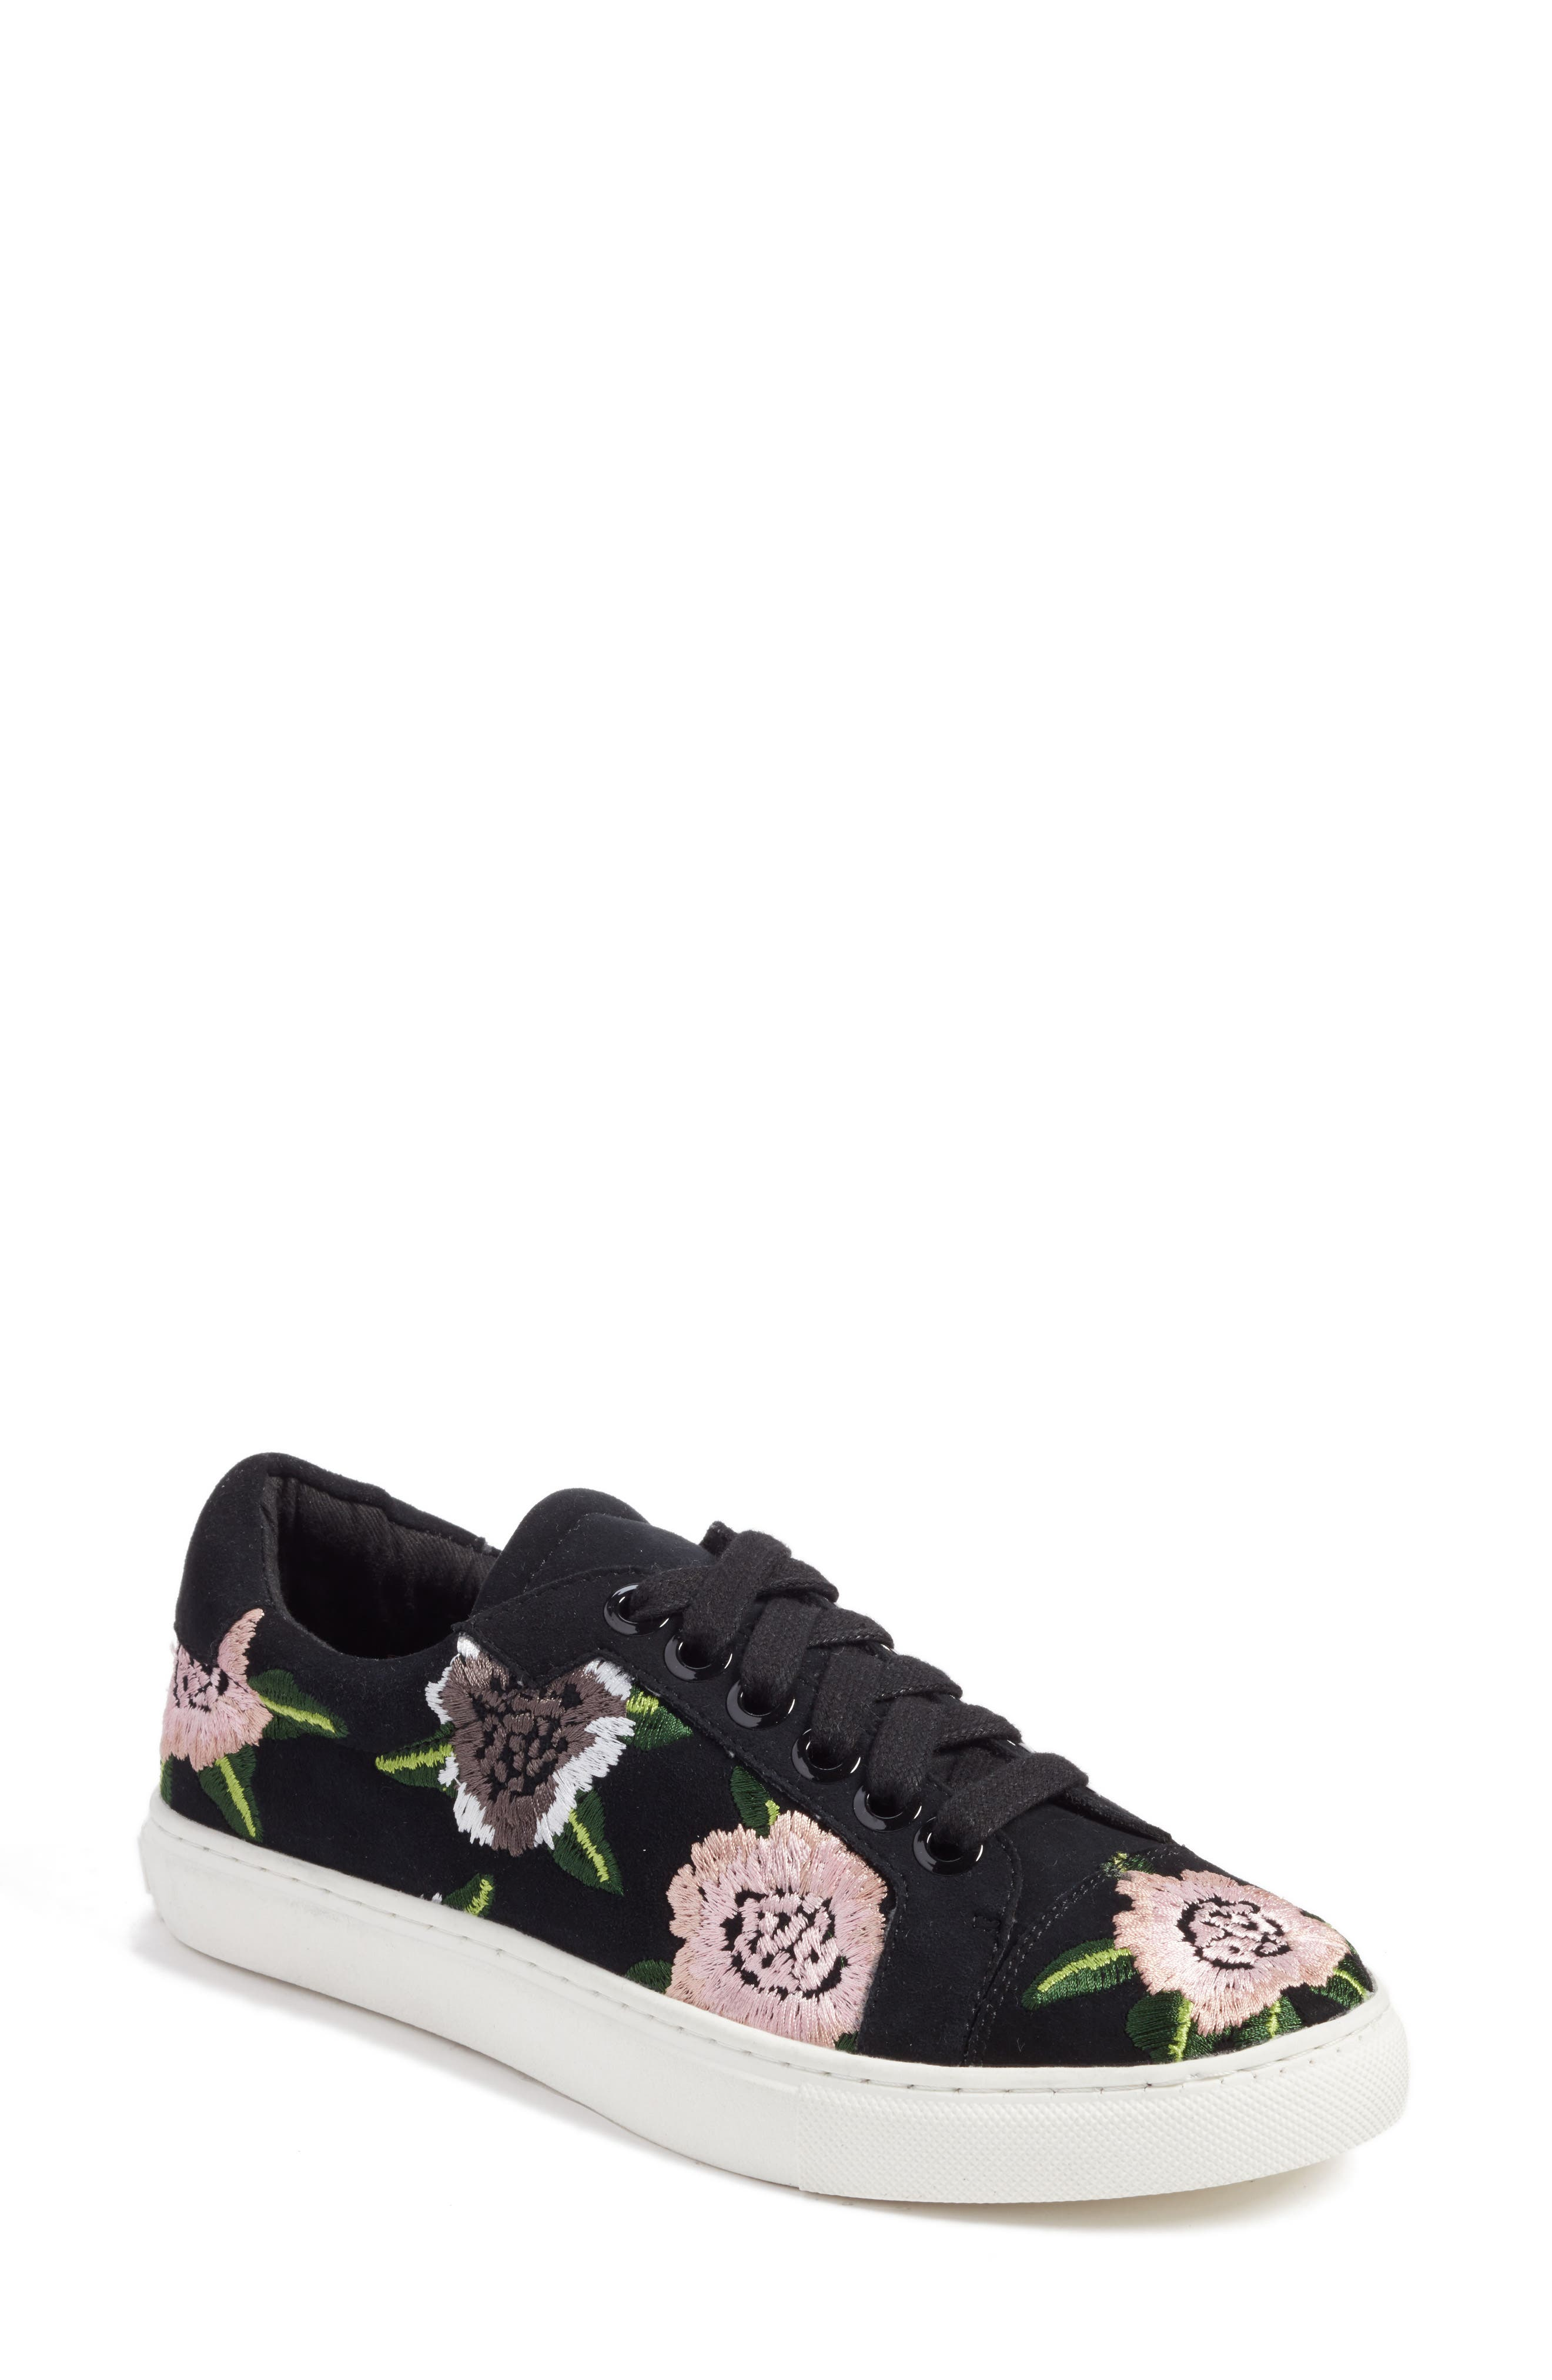 Rebecca Minkoff Bleecker Floral Embroidered Sneaker (Women)